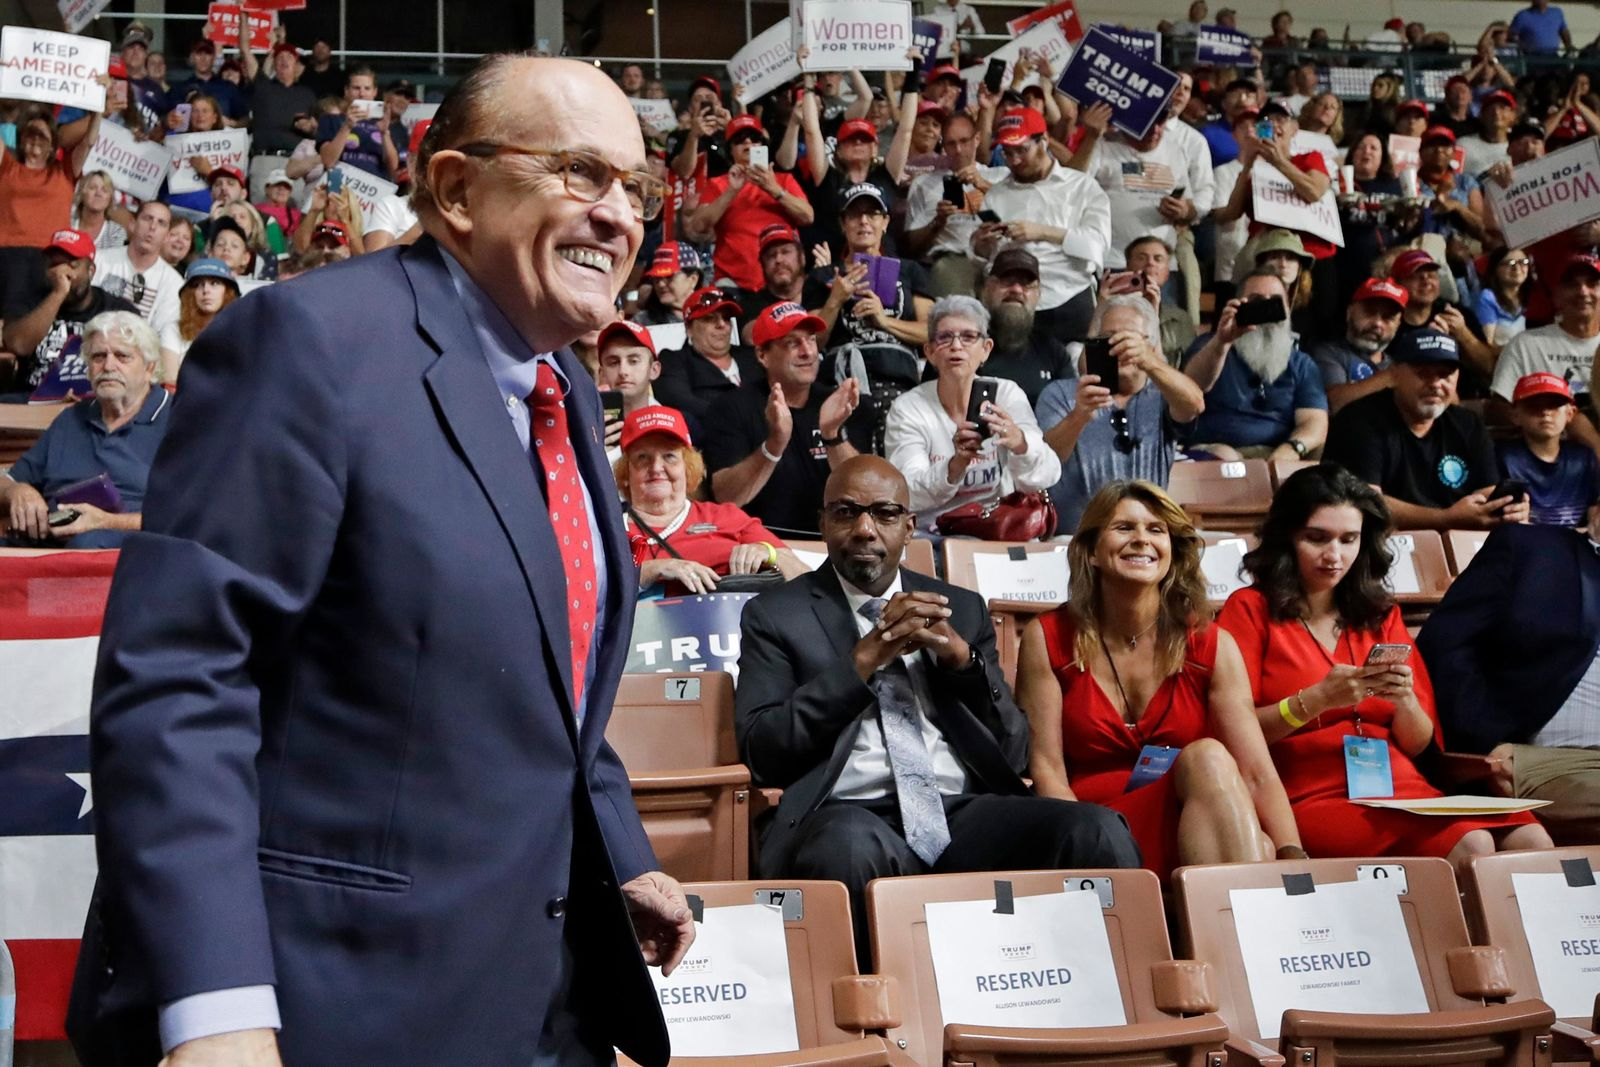 FILE - In this Aug. 15, 2019, file photo, former New York City Mayor Rudy Giuliani smiles as he arrives to President Donald Trump's campaign rally in Manchester, N.H.{ } (AP Photo/Elise Amendola, File)